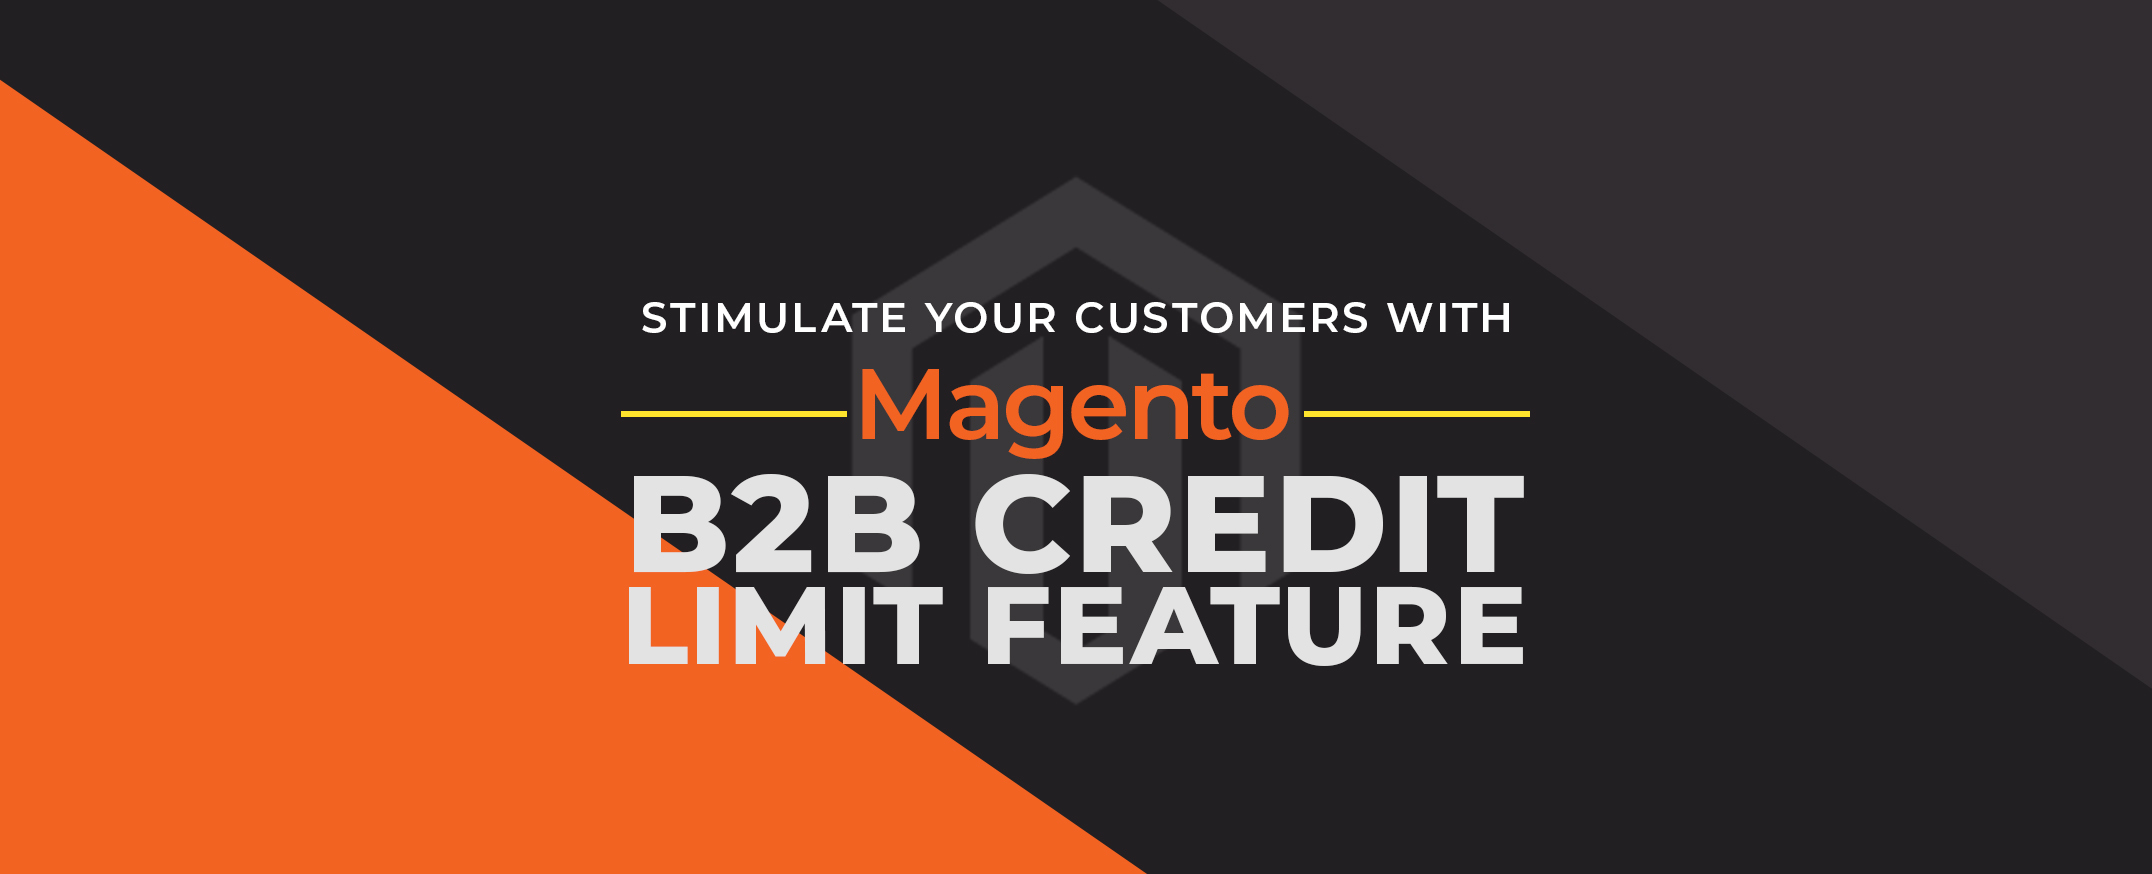 Stimulate-your-Customers-with-Magento-B2B-Credit-Limit-feature